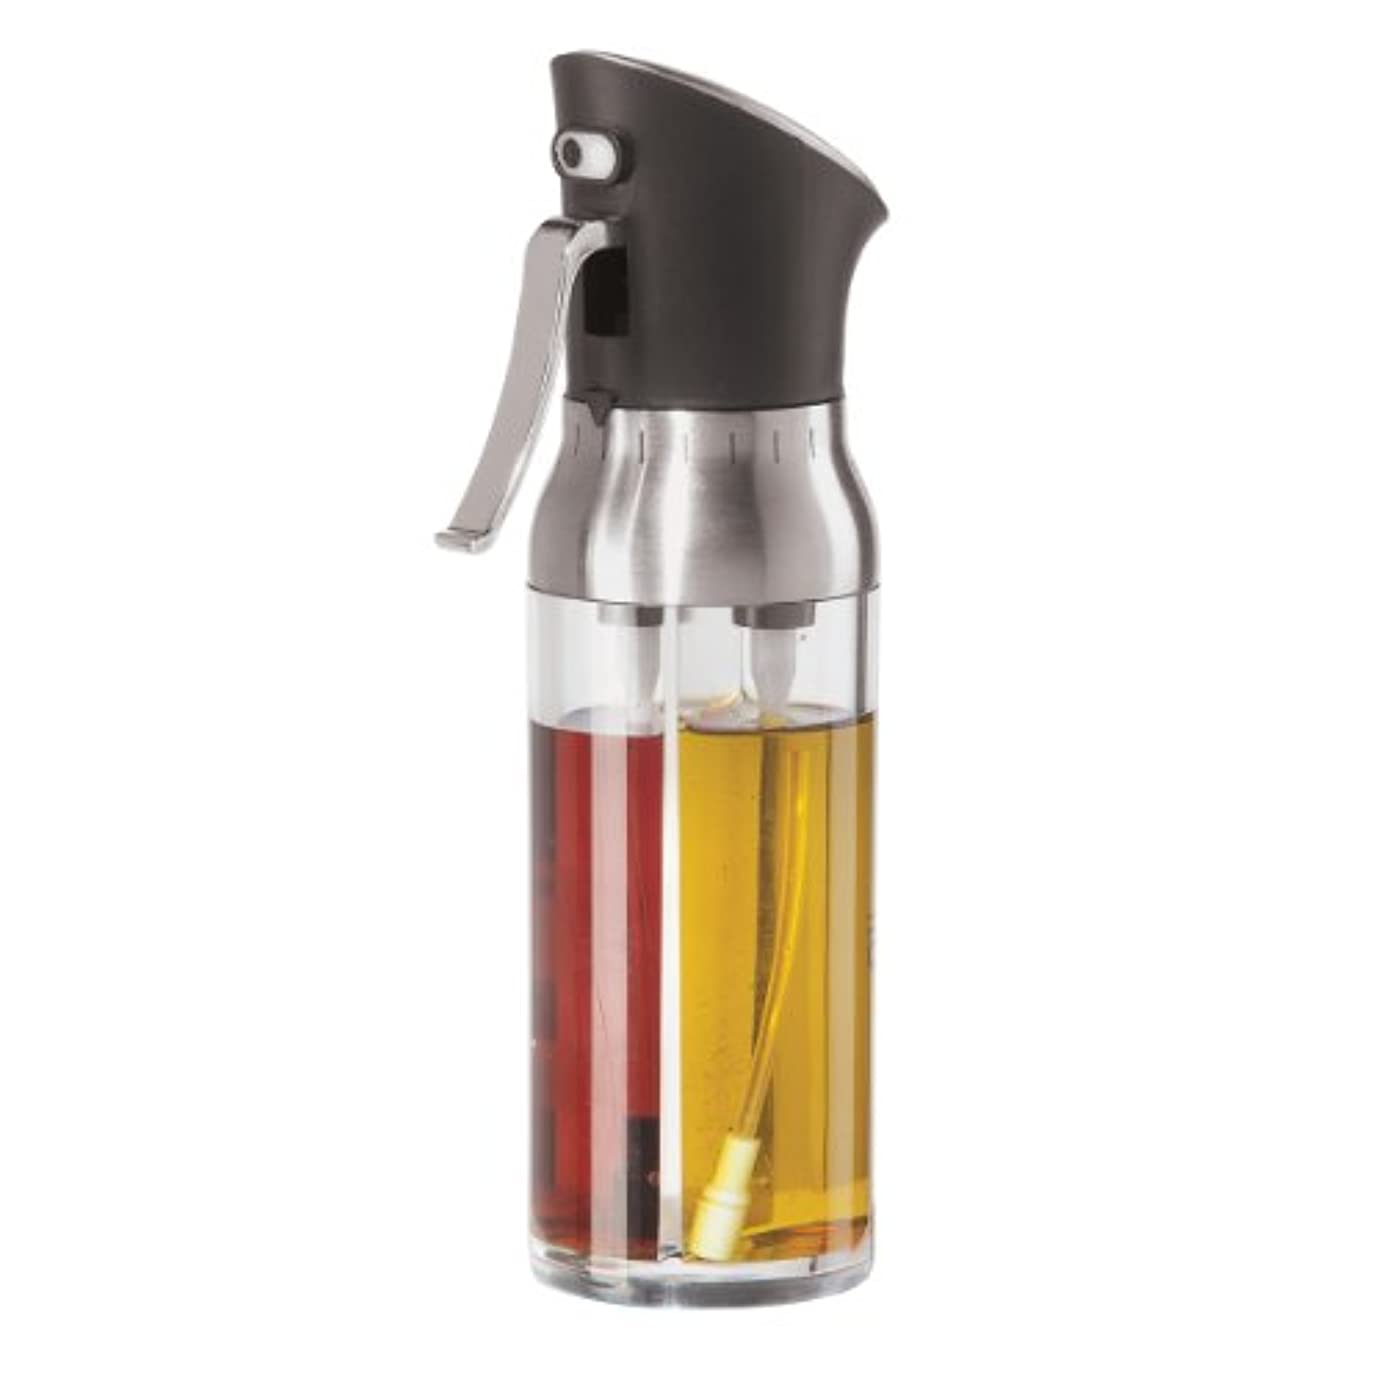 Oggi 6004 Mix and Mist Combination Oil and Vinegar Spray Bottle